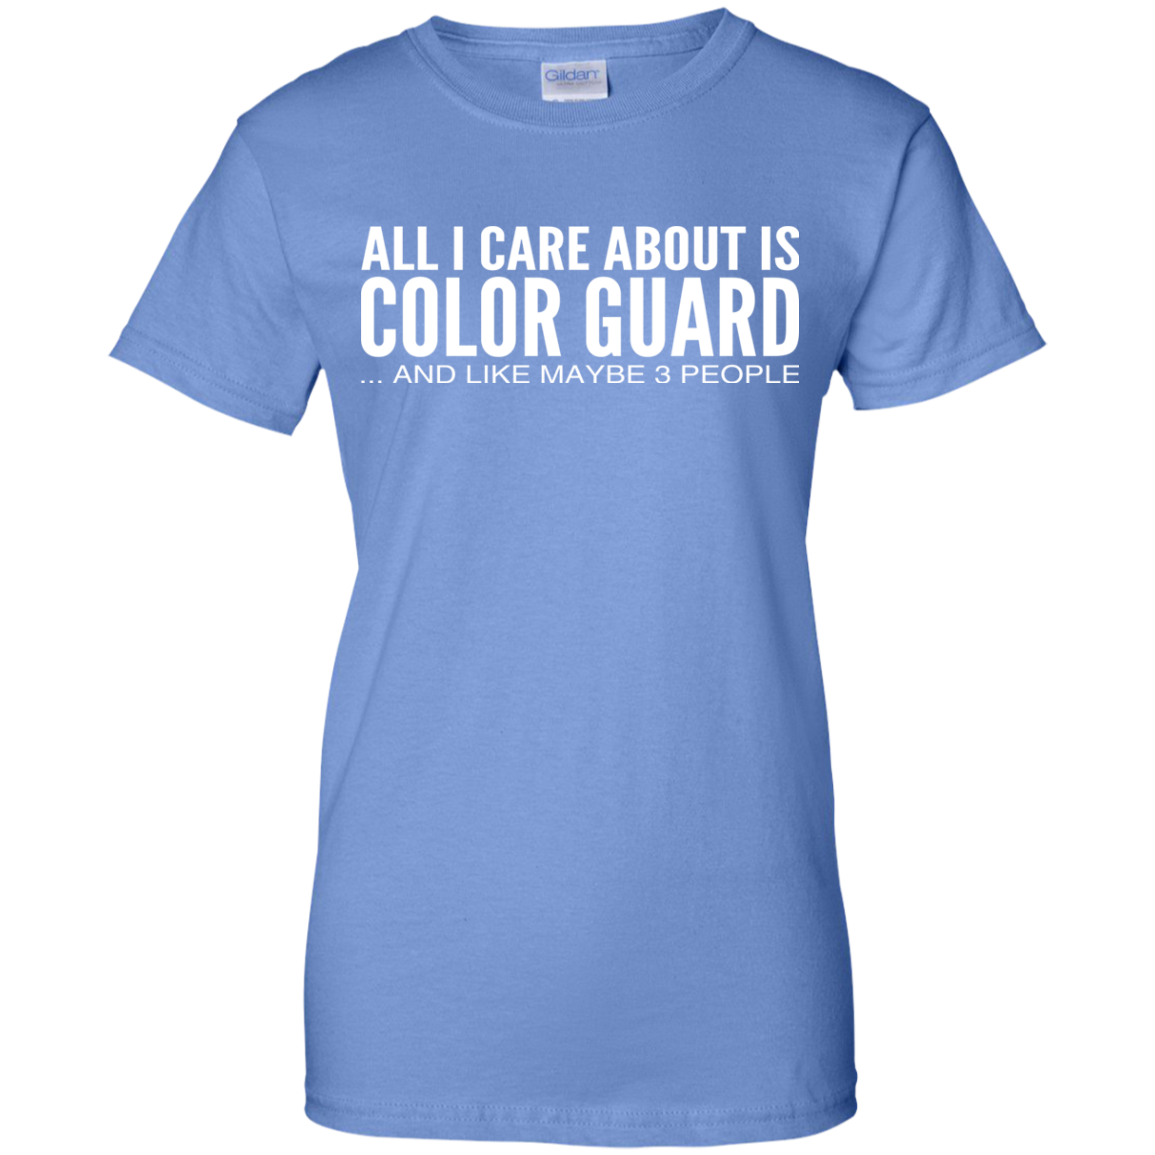 All I Care About Is Color Guard And Like Maybe 3 People Ladies Tees